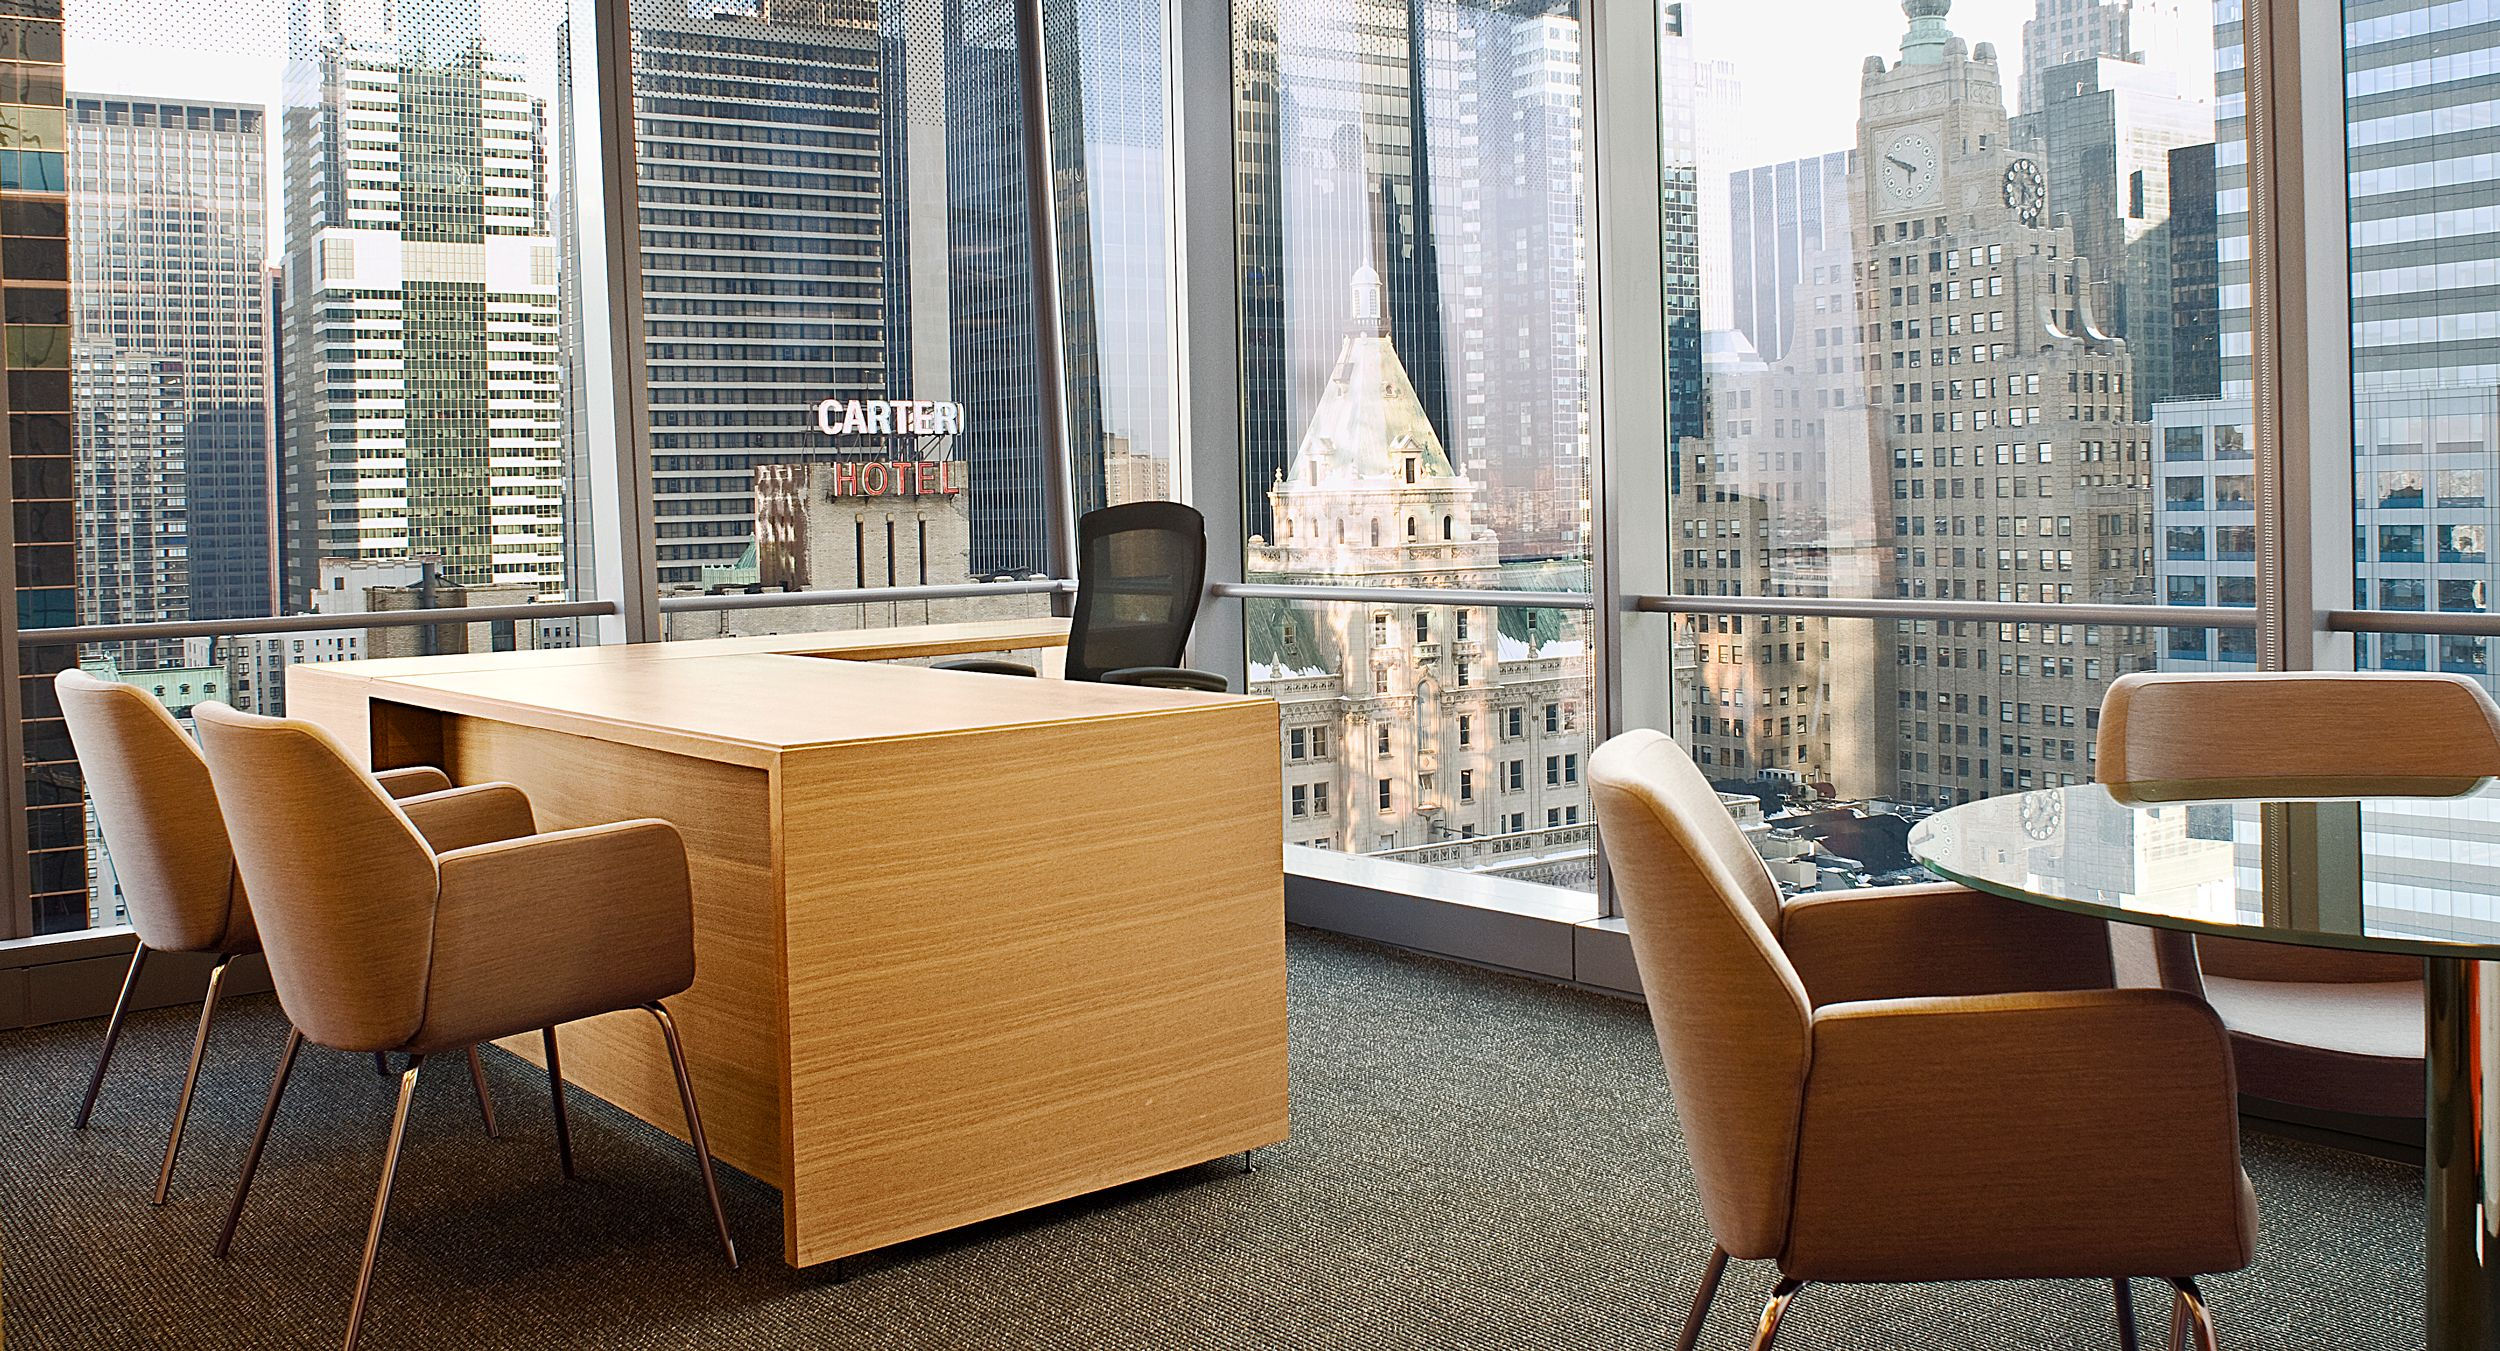 HALCON provided nearly 200 unique partner office configurations and also provided ancillary pieces including round glass tables.